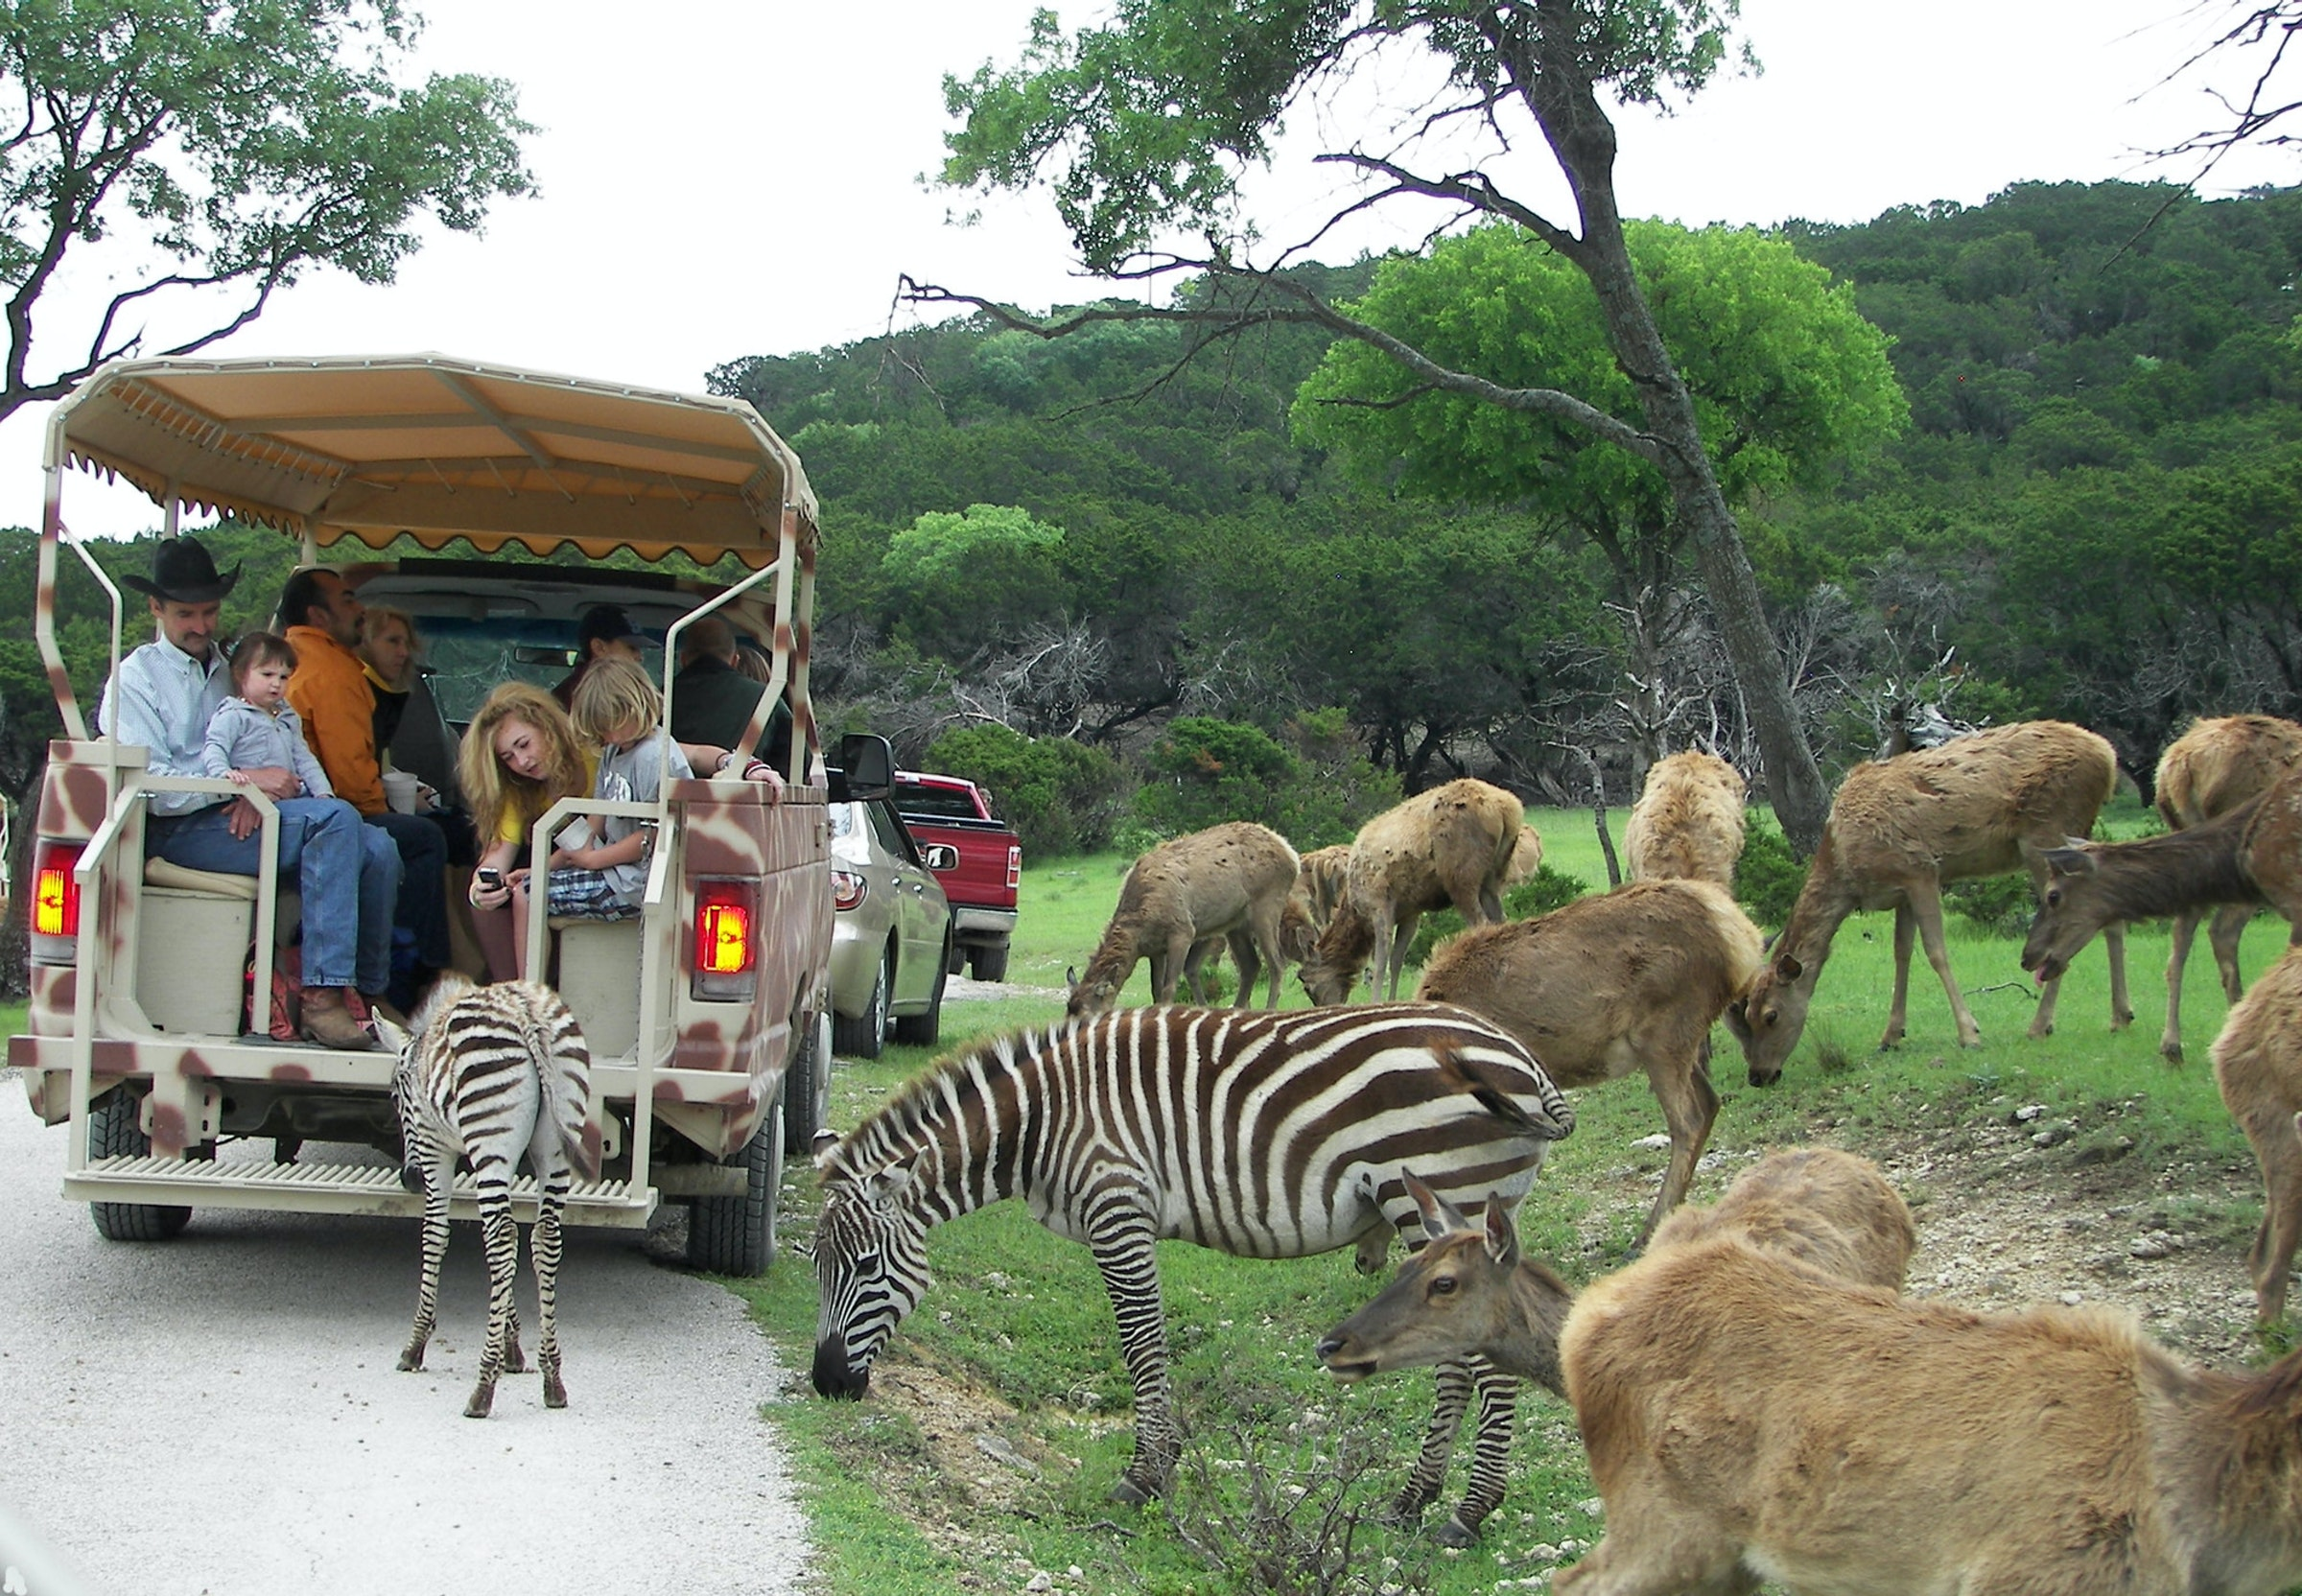 Fossil Rim Wildlife Center in Beyond Dallas